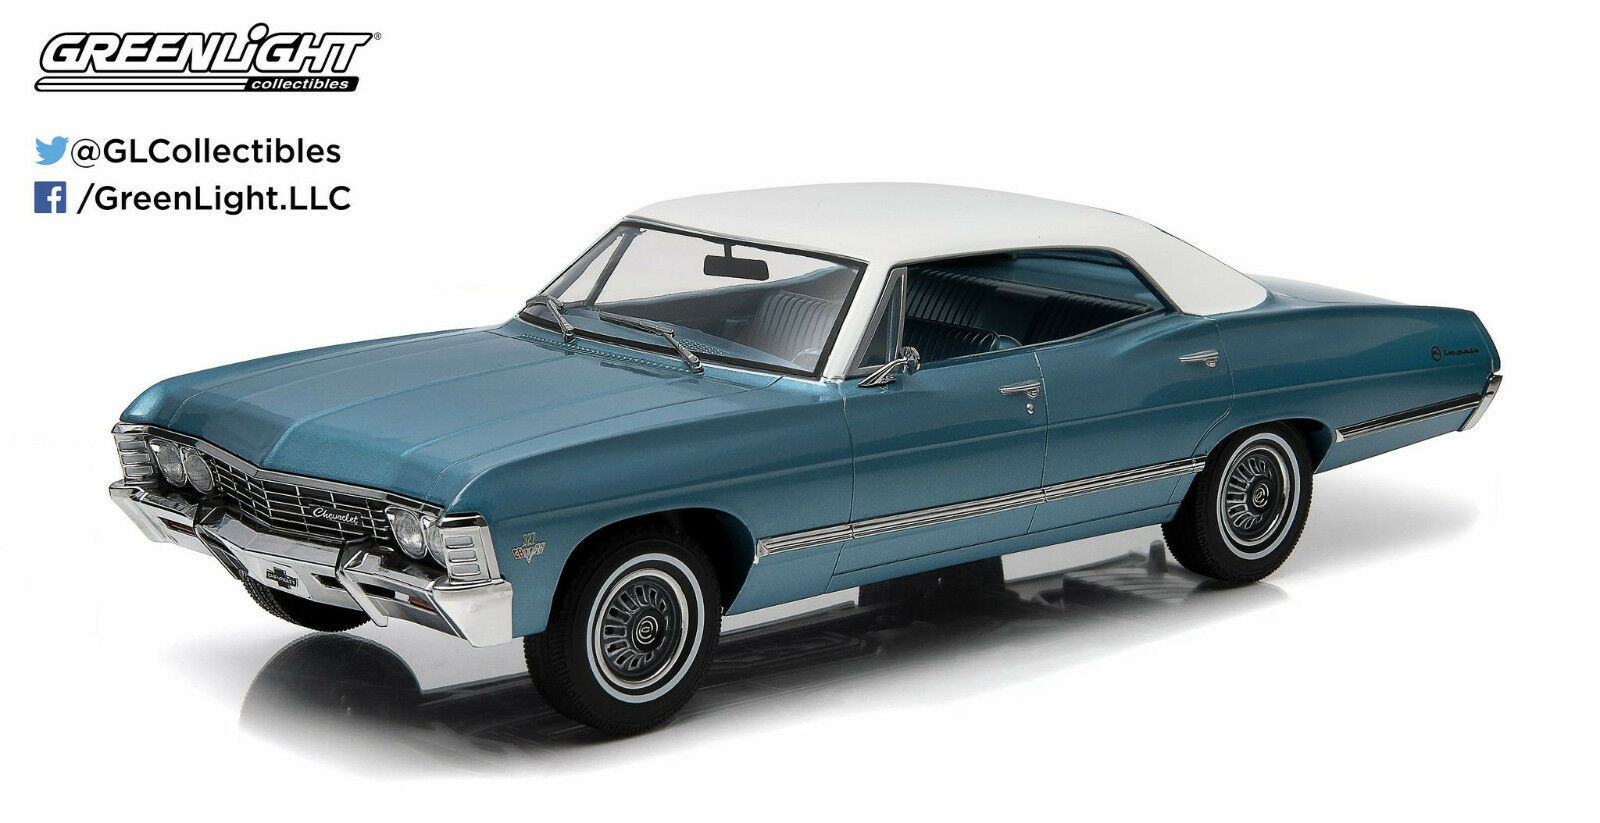 1967 Chevrolet Impala Sport Sedan 1 18 Greenlight 19008 blueE